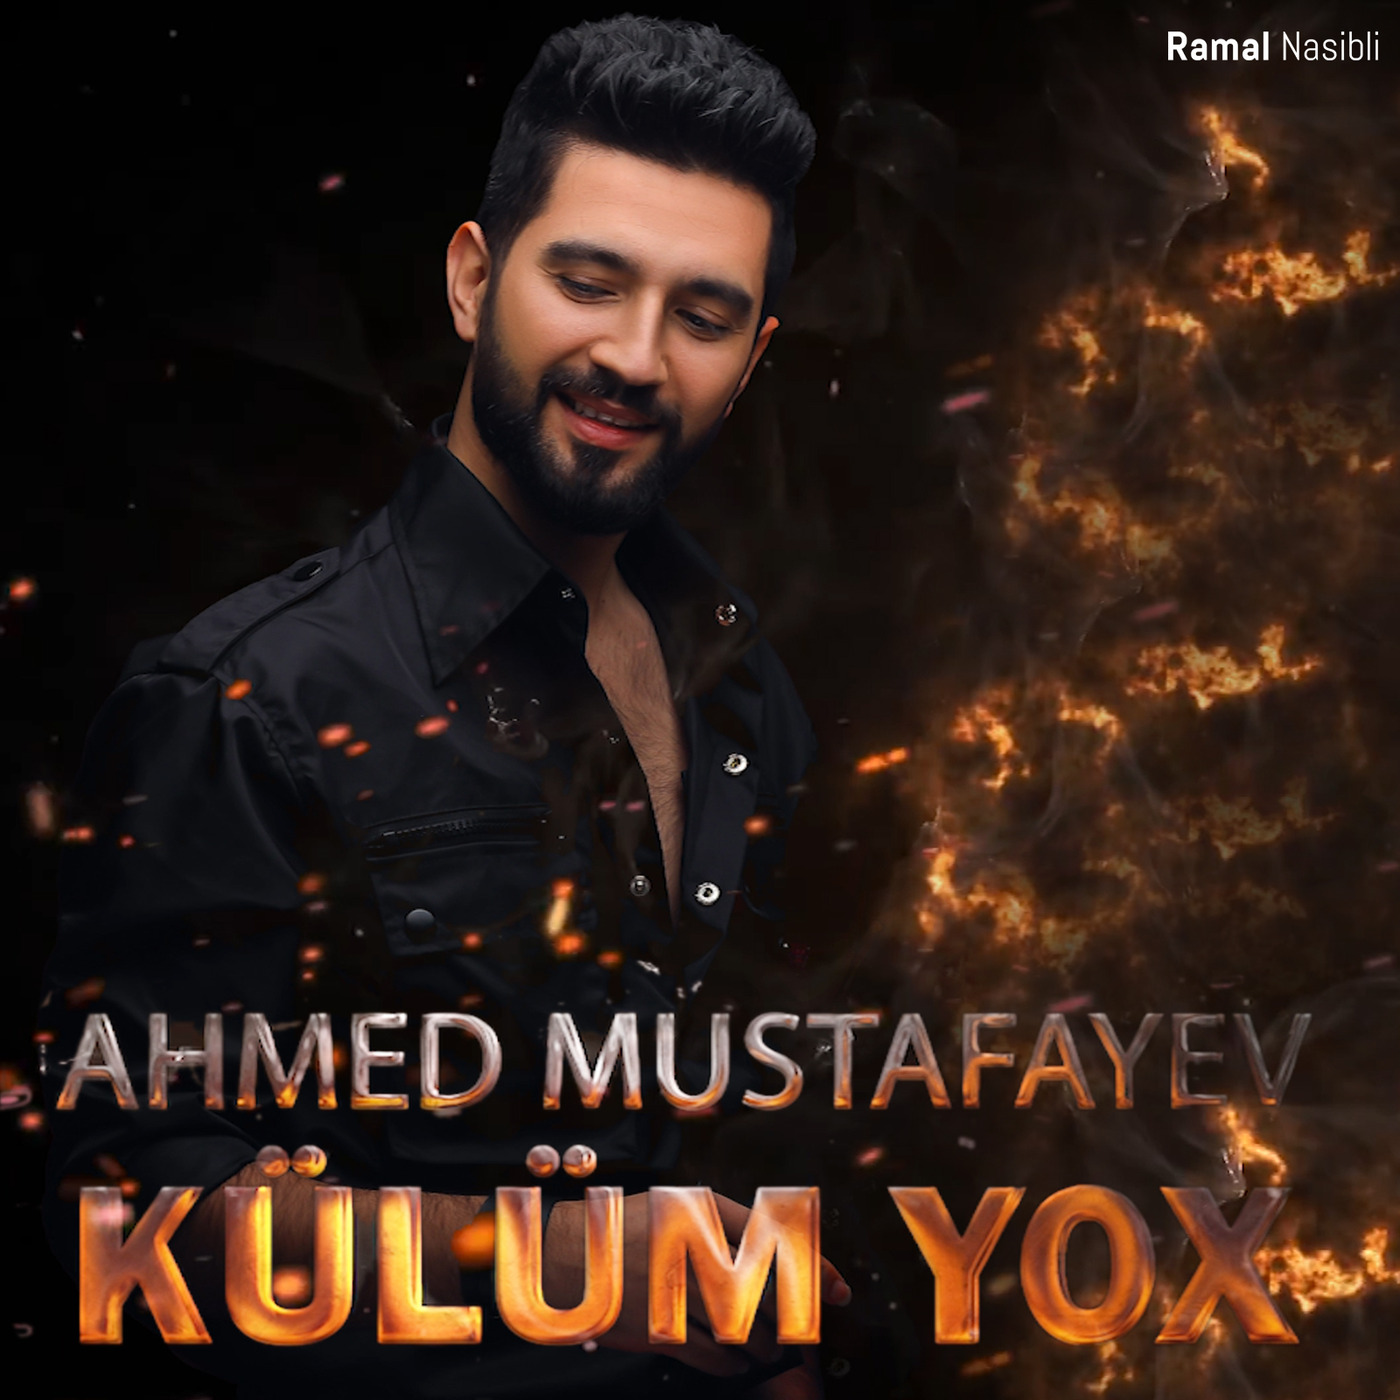 Ahmed Mustafayev - Kulum Yox (320 kbps) [2020] Single Direct Link